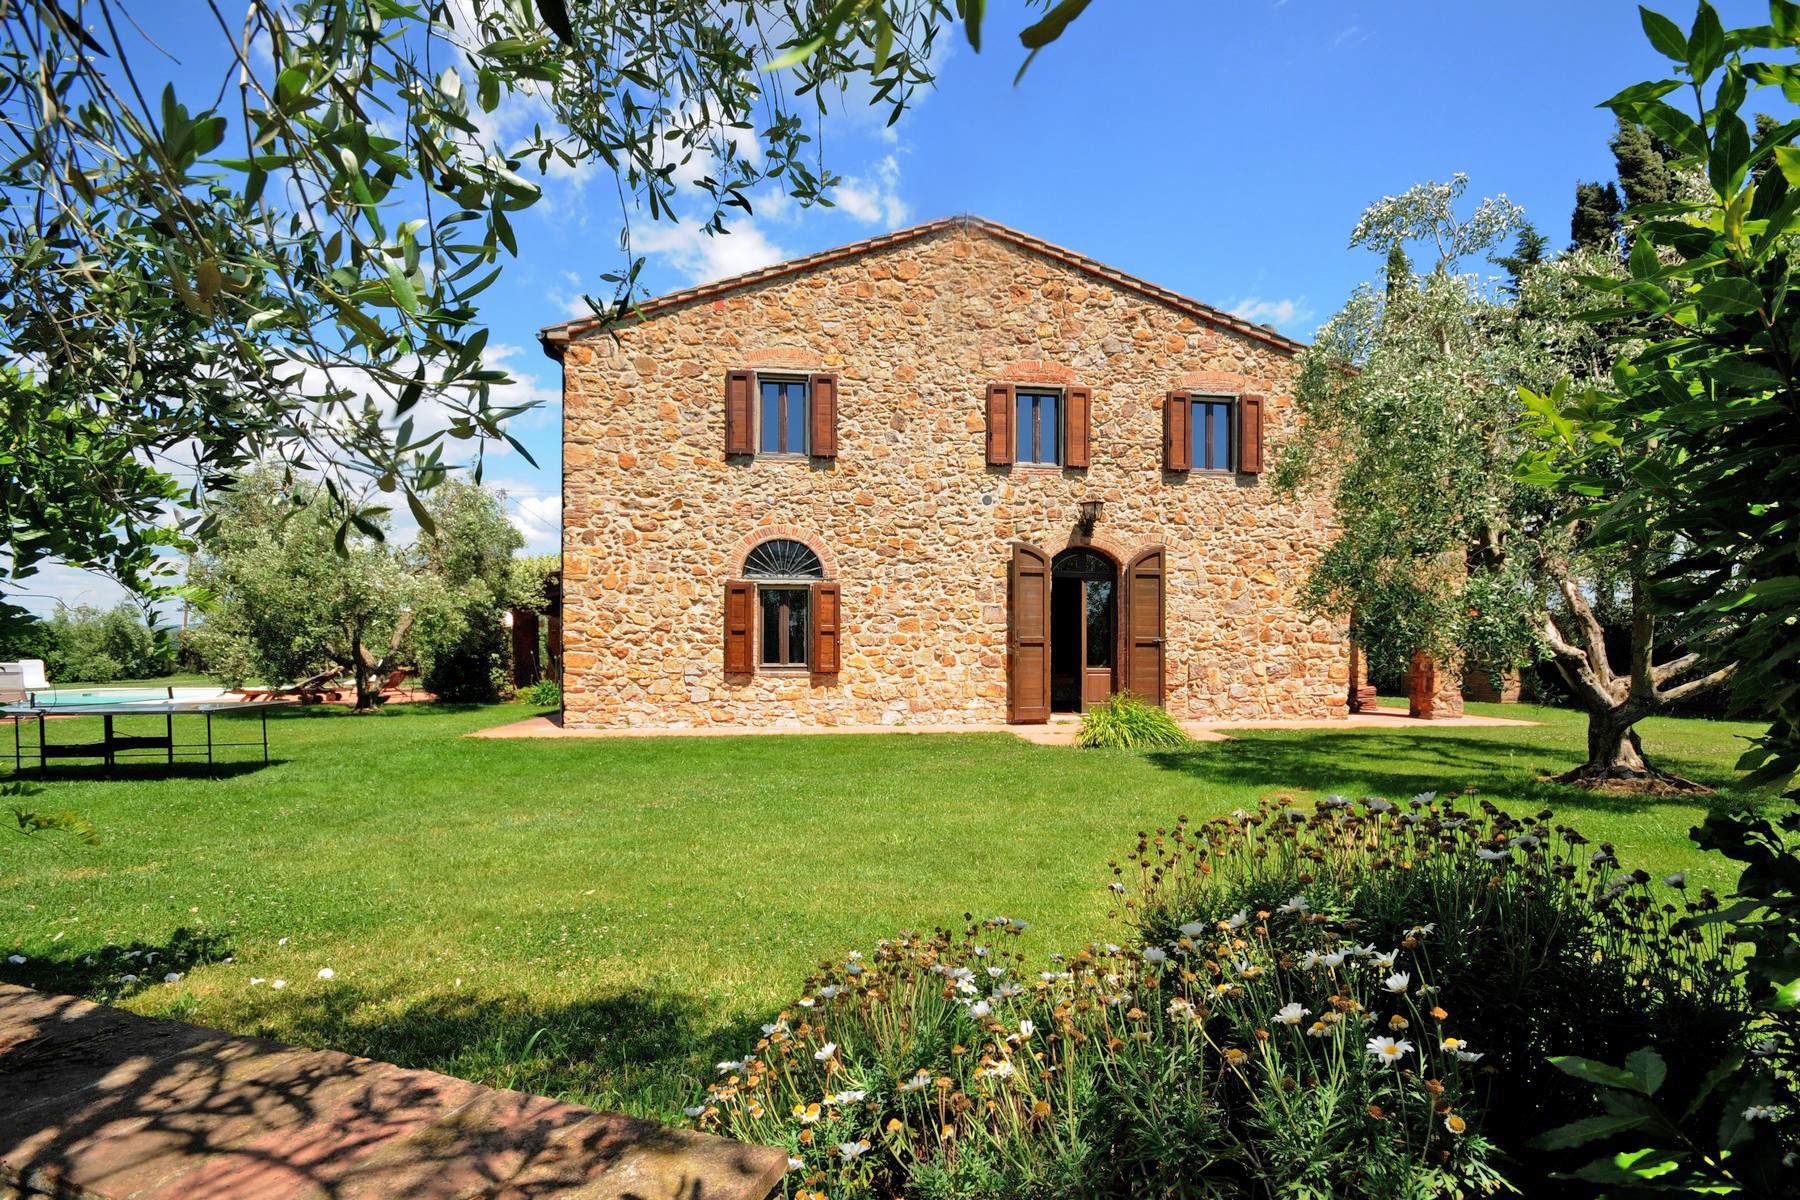 Single Family Home for Sale at Lovely Tuscan-style villa close to the sea Campiglia Marittima, Livorno, Italy